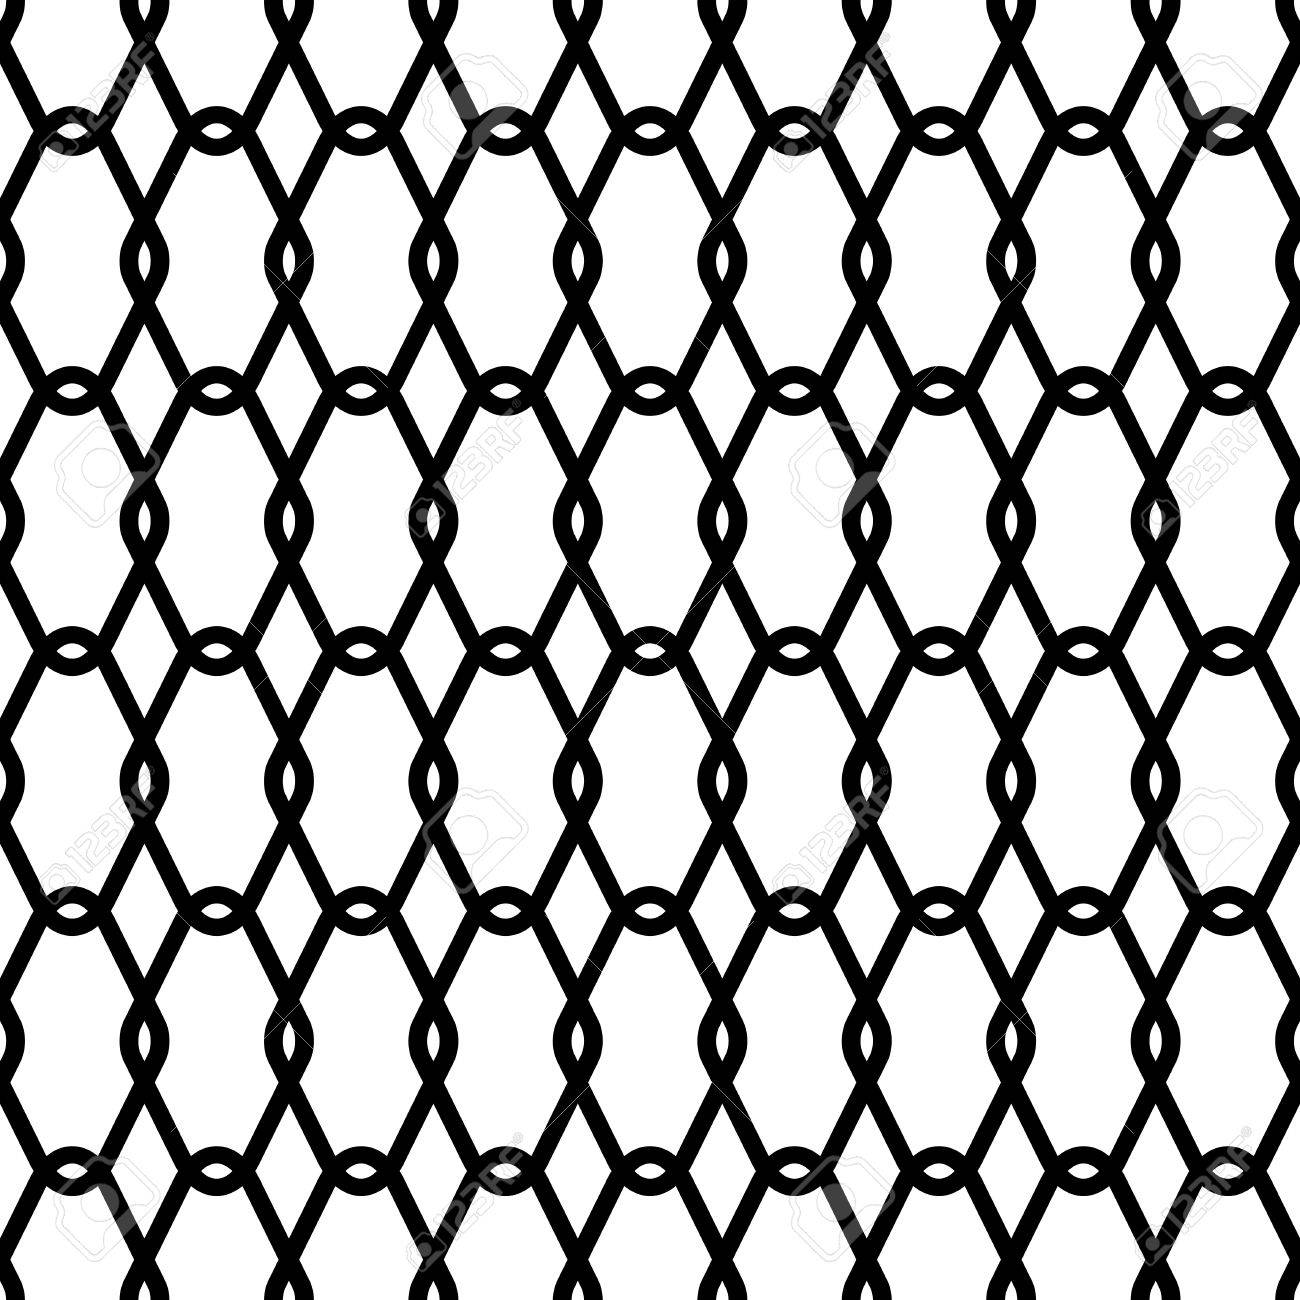 Wire Mesh Drawing At Getdrawings